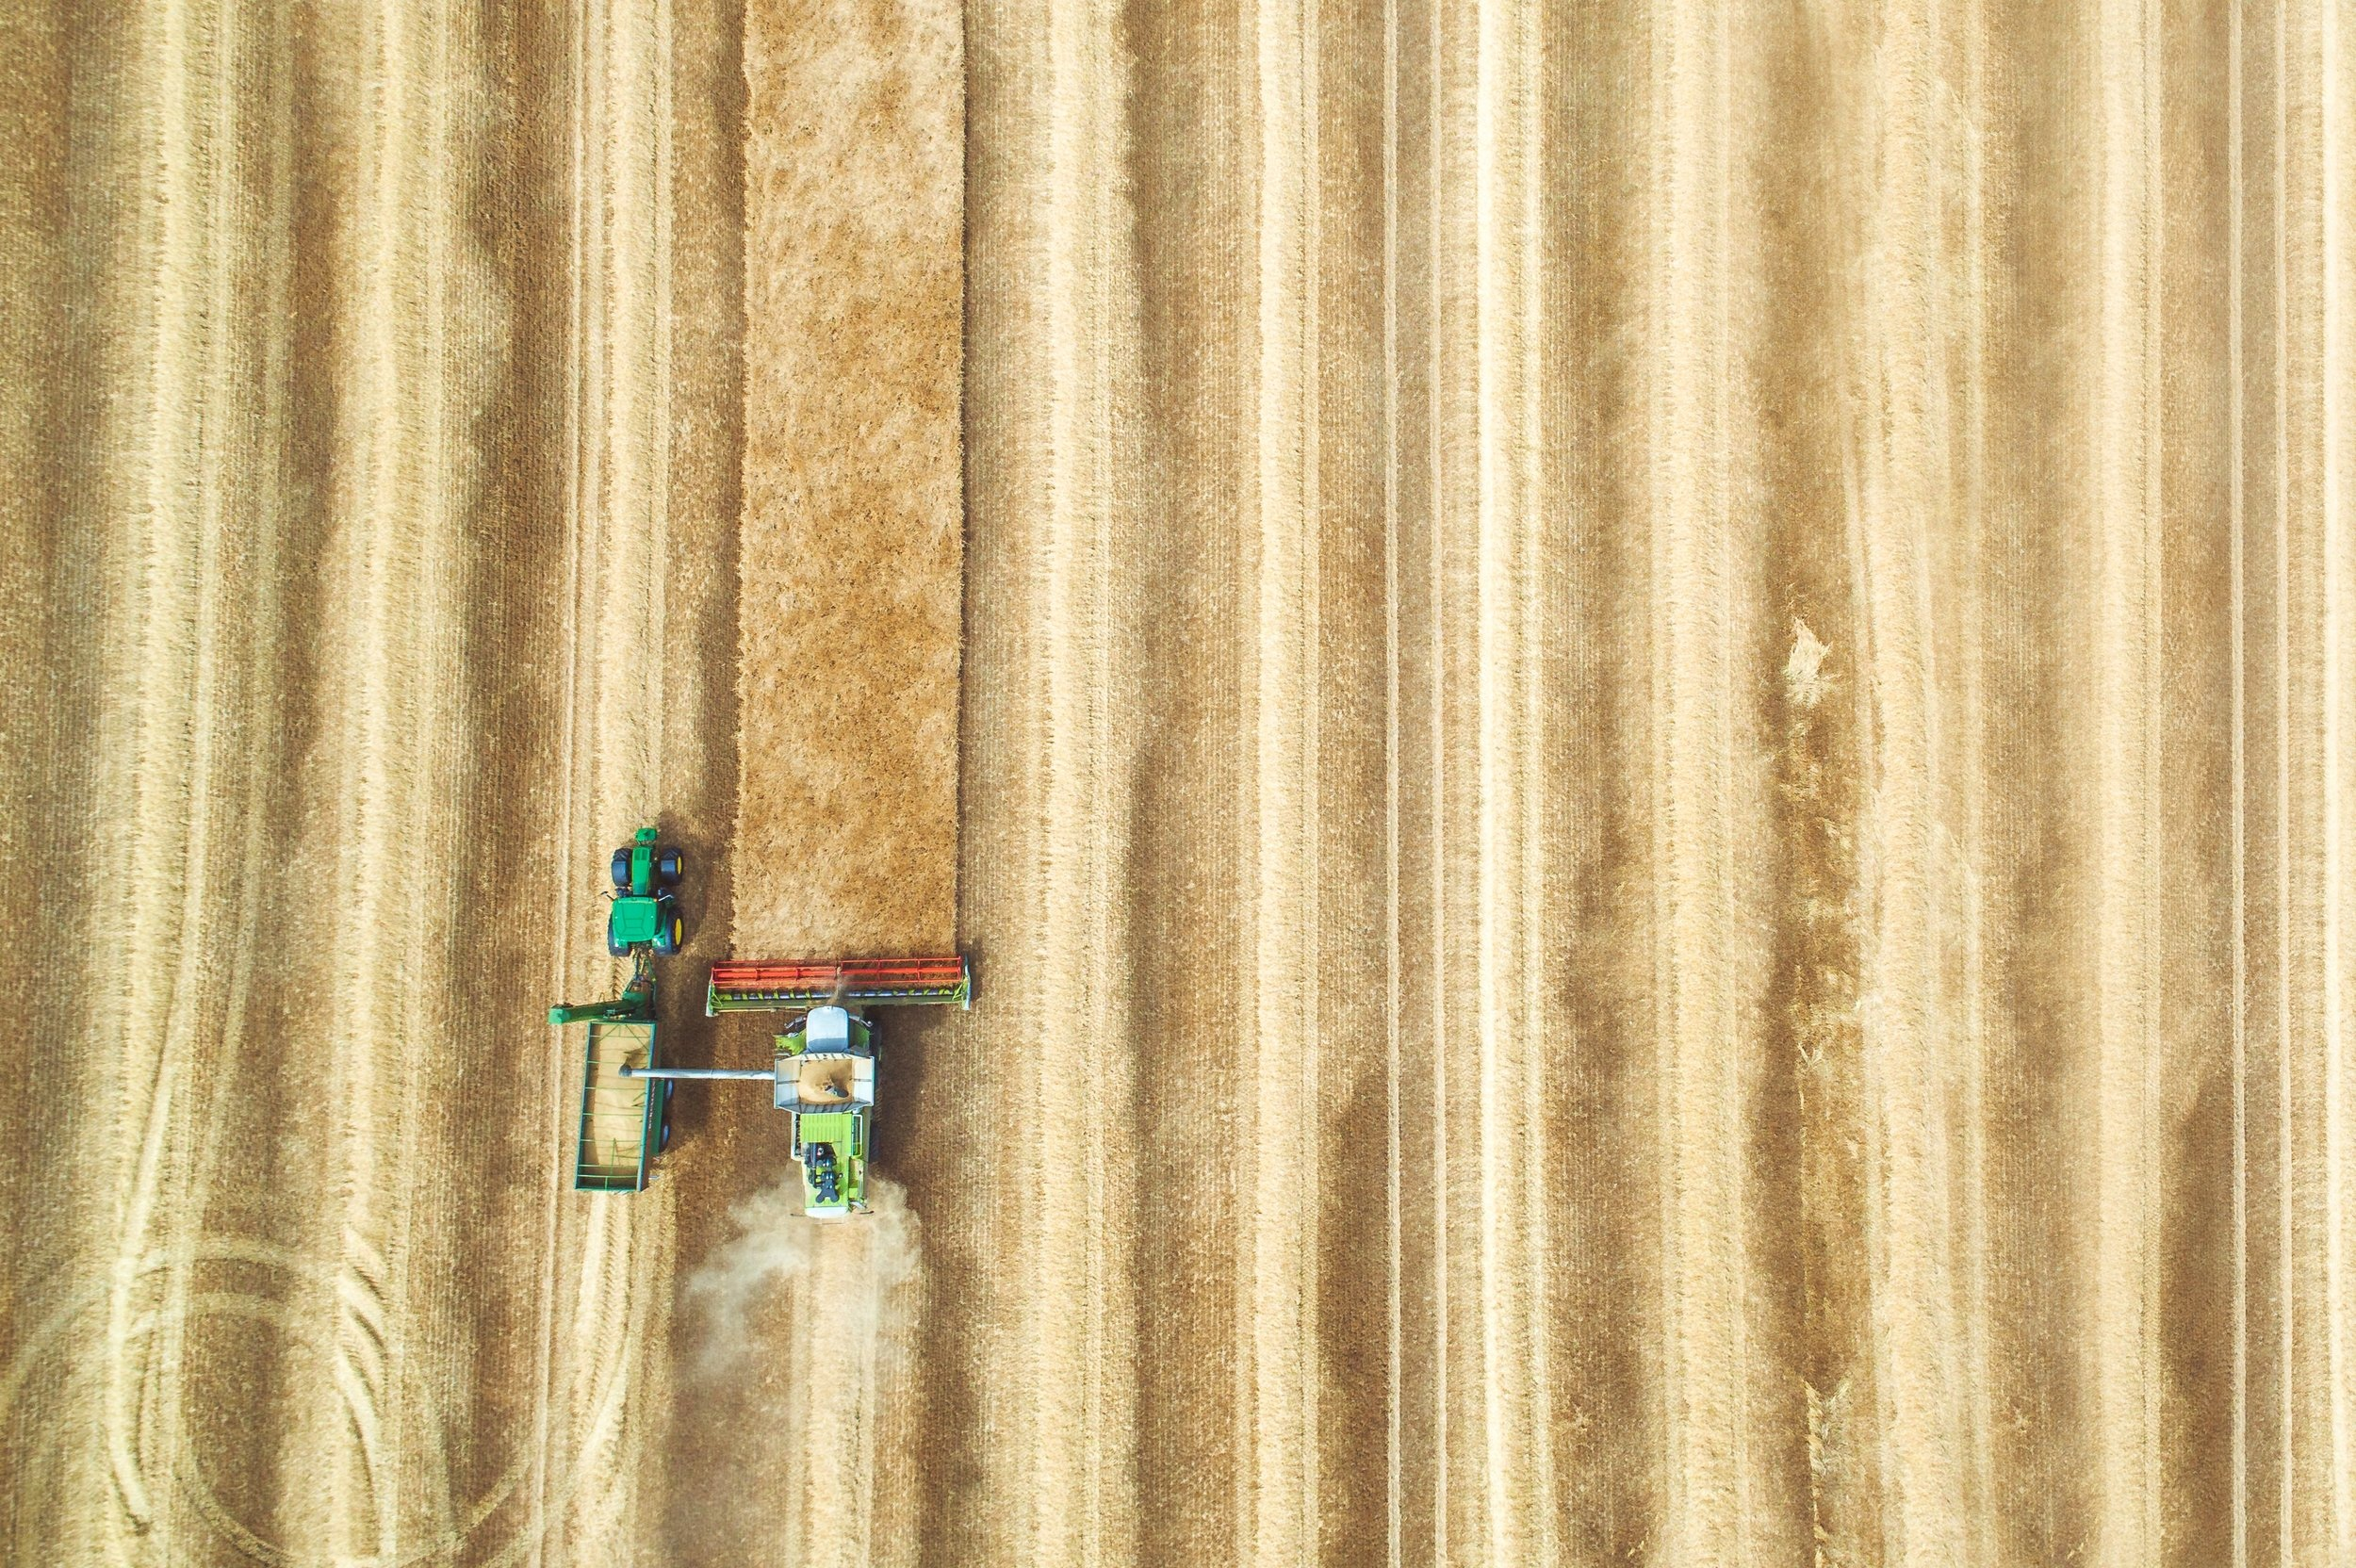 A bird's eye view of the neo-liberal monoculture that prioritises the maximisation of yield.